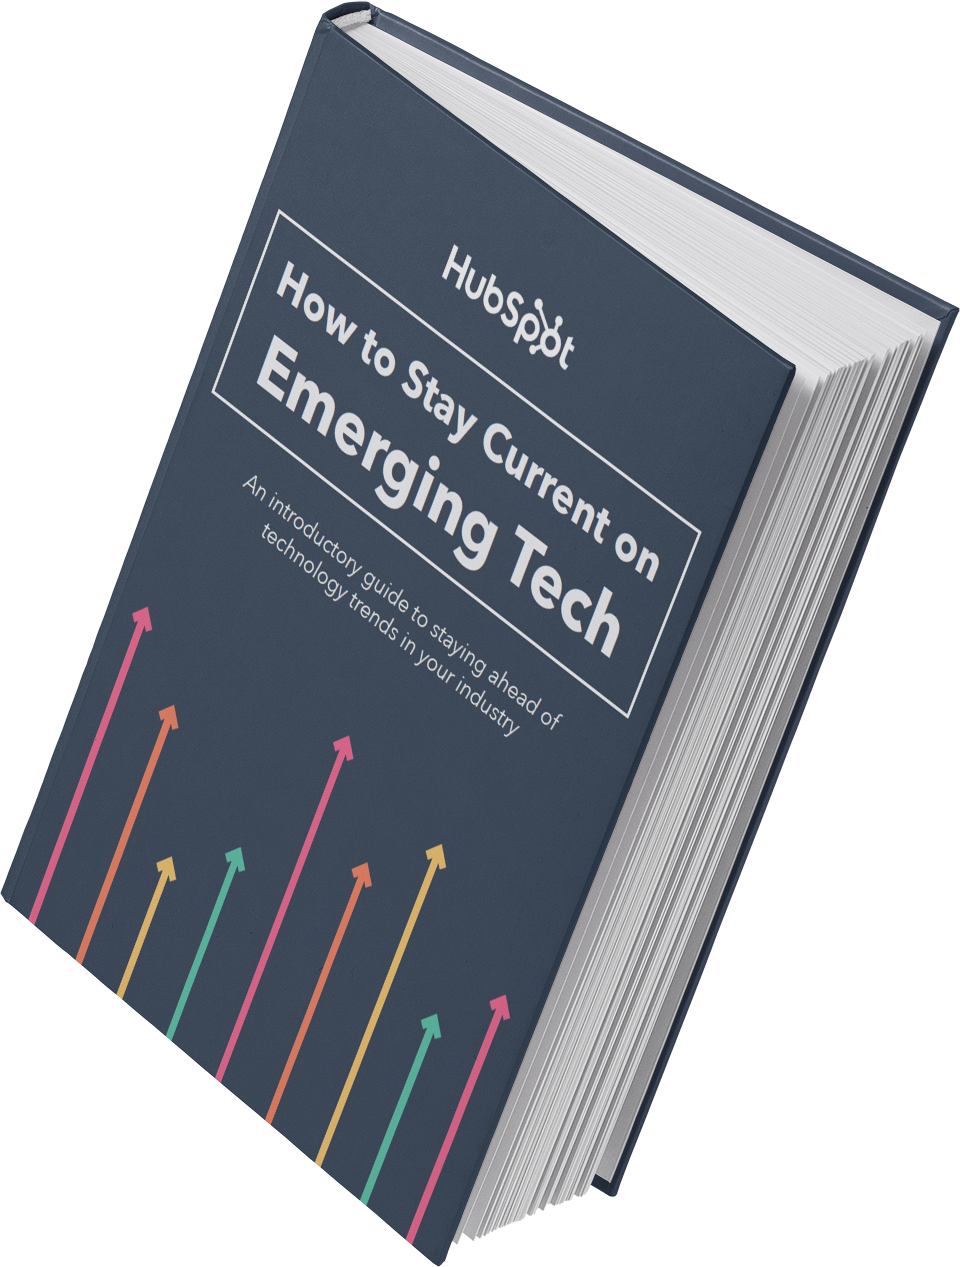 Final-Cover---How-to-Stay-Current-on-Emerging-Tech-Ebook-1-1.png